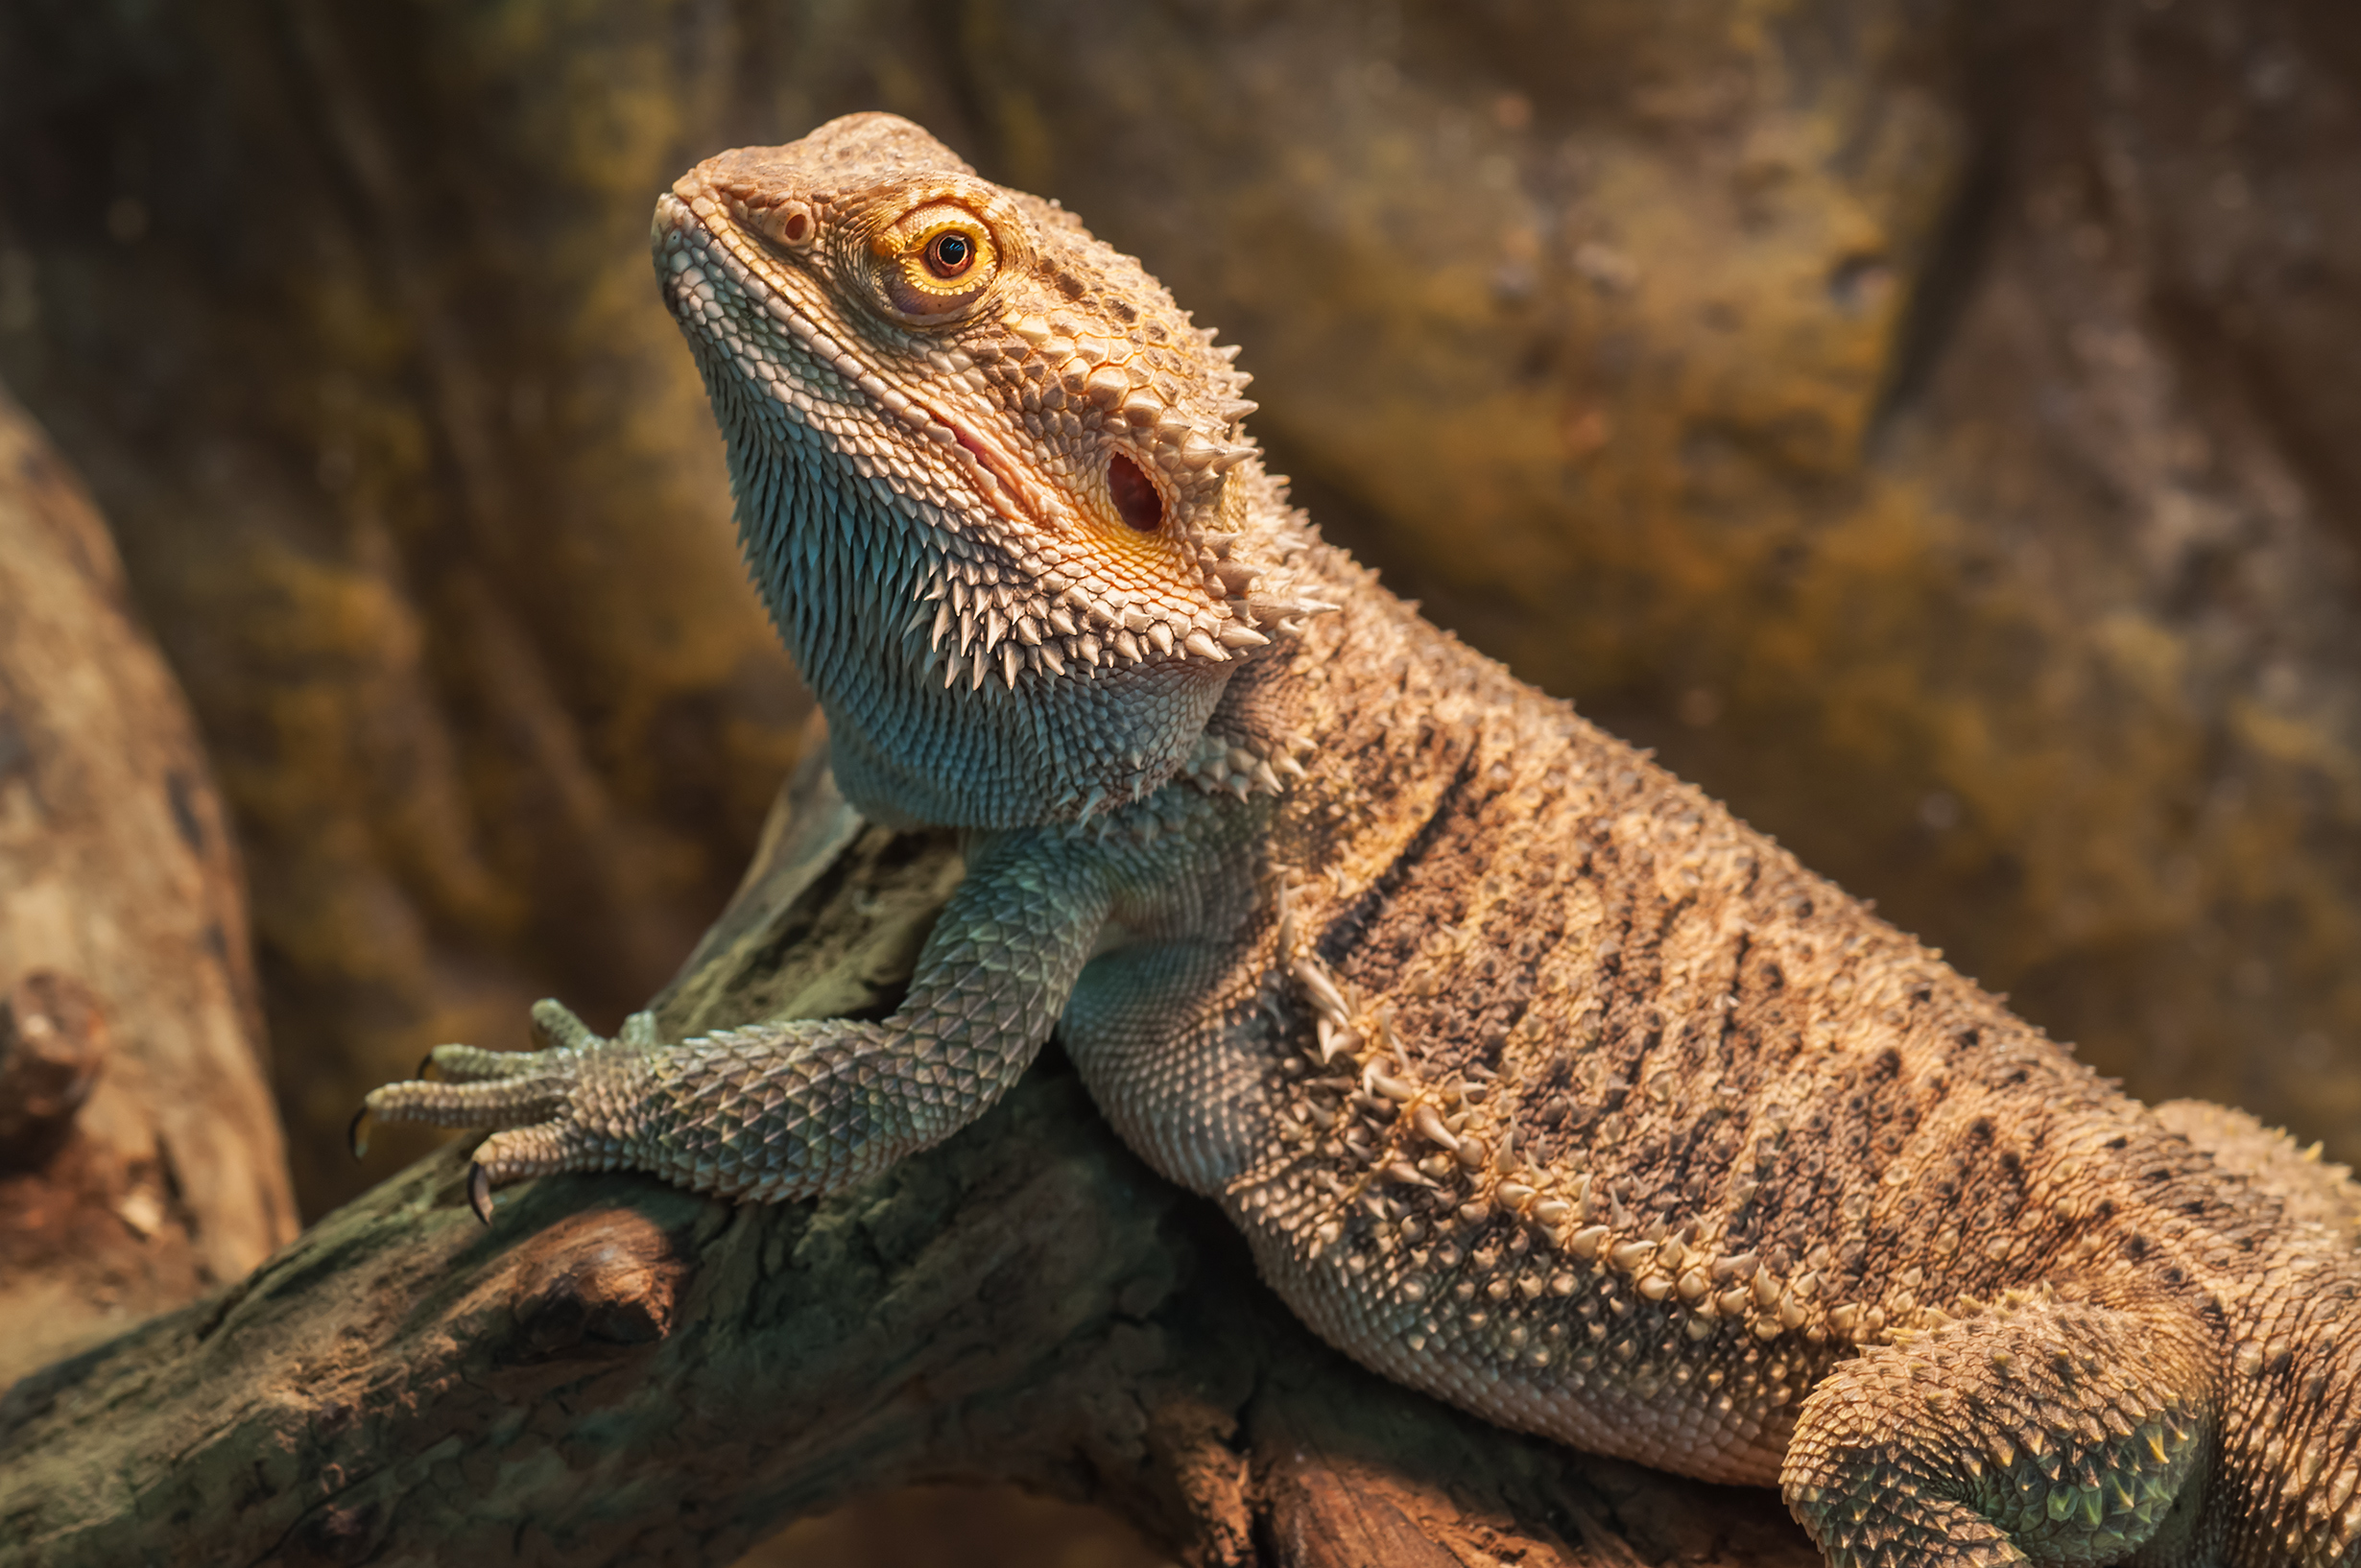 What Are the Adaptations a Lizard Has That Allow It to Live